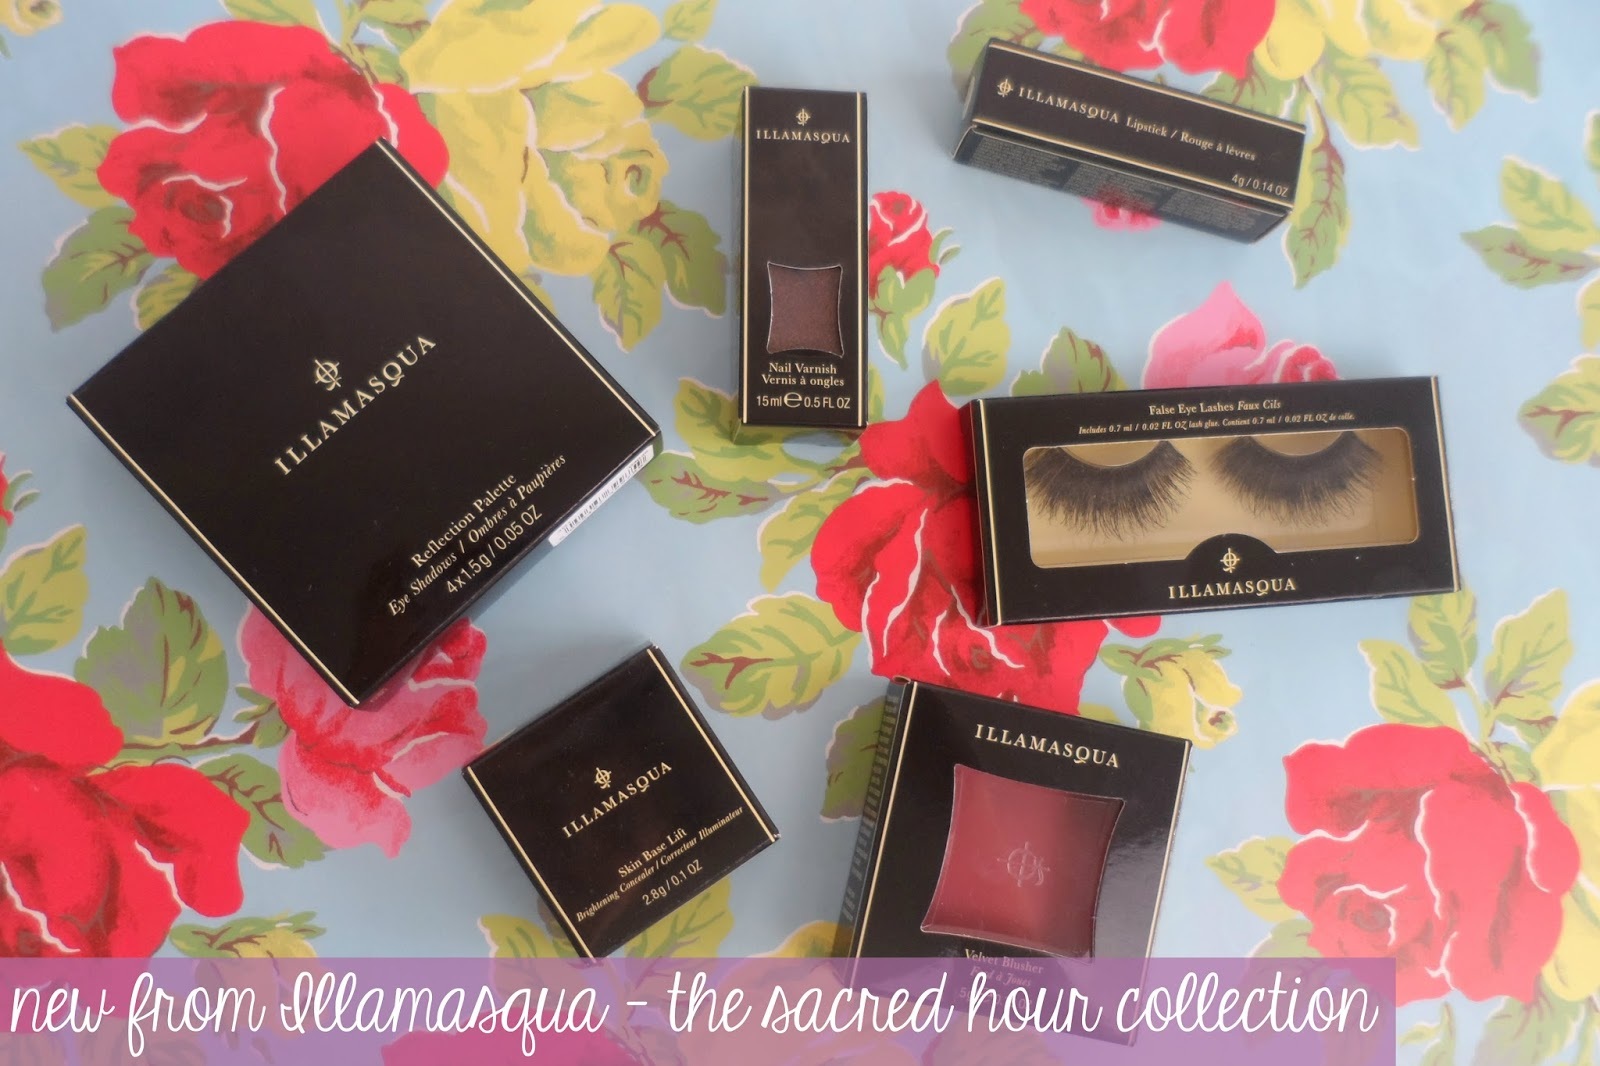 6d83e62457f The sacred hour collection from Illamasqua. I really meant to share this  collection with you a lot sooner, but work's really been getting in the way  of ...